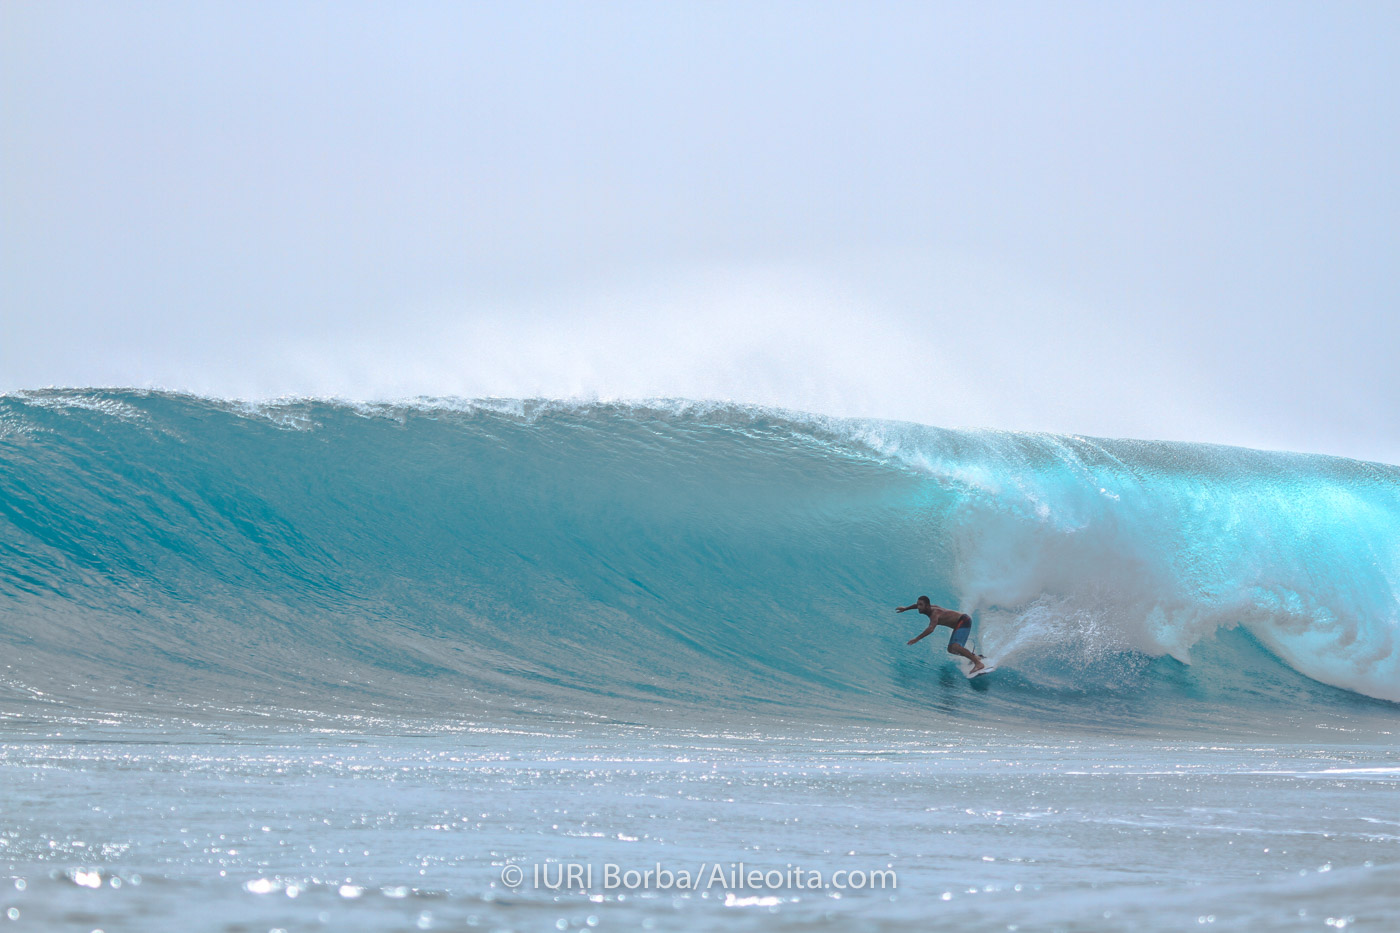 Photos: Diary of an Epic Mentawai Trip